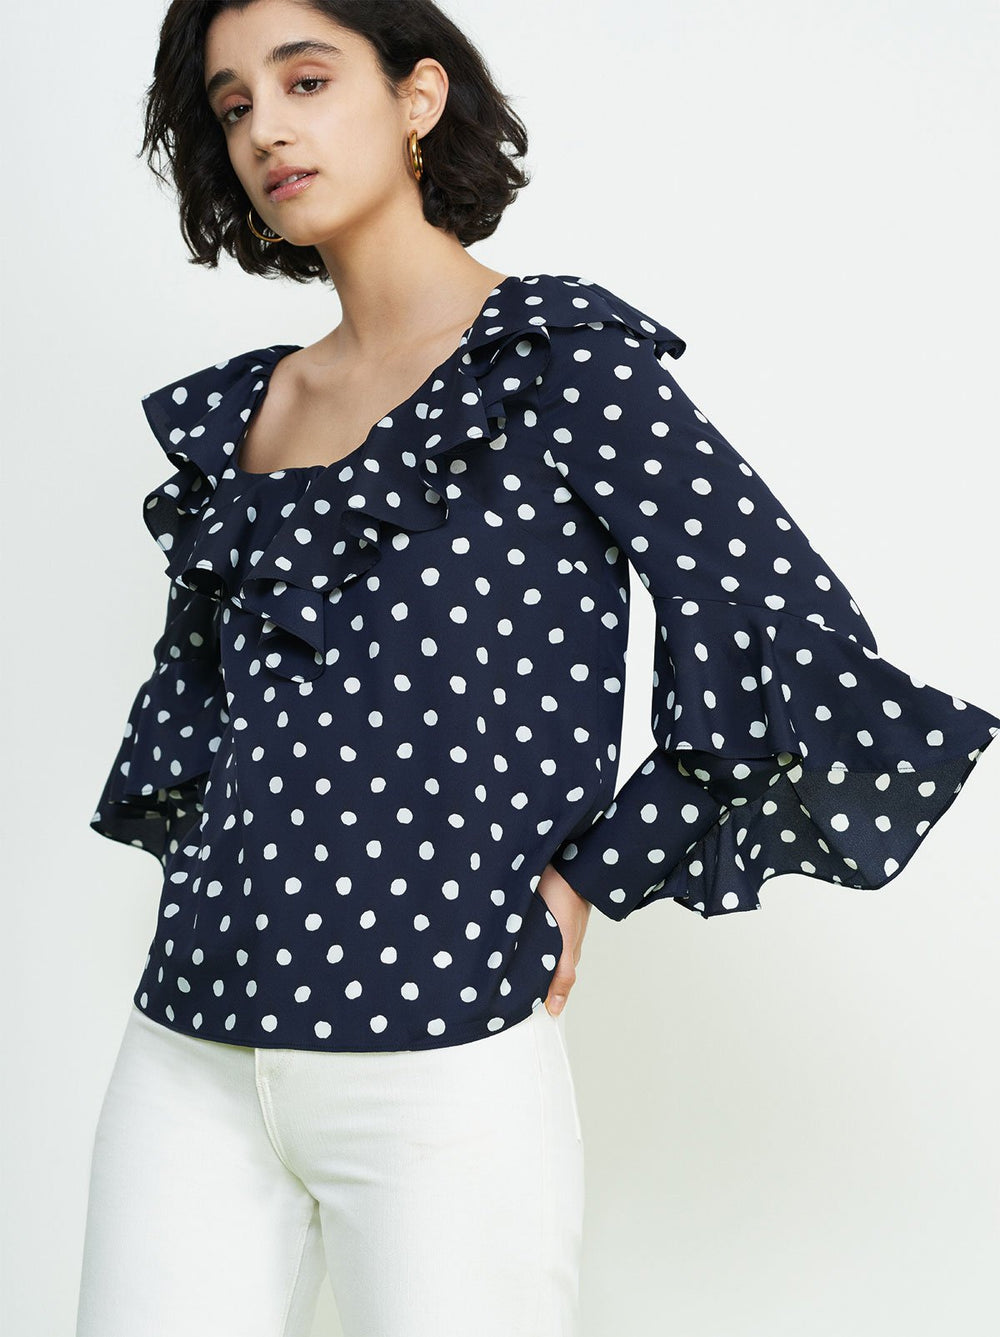 Hazel Navy Polka Dot Frill Top by KITRI Studio